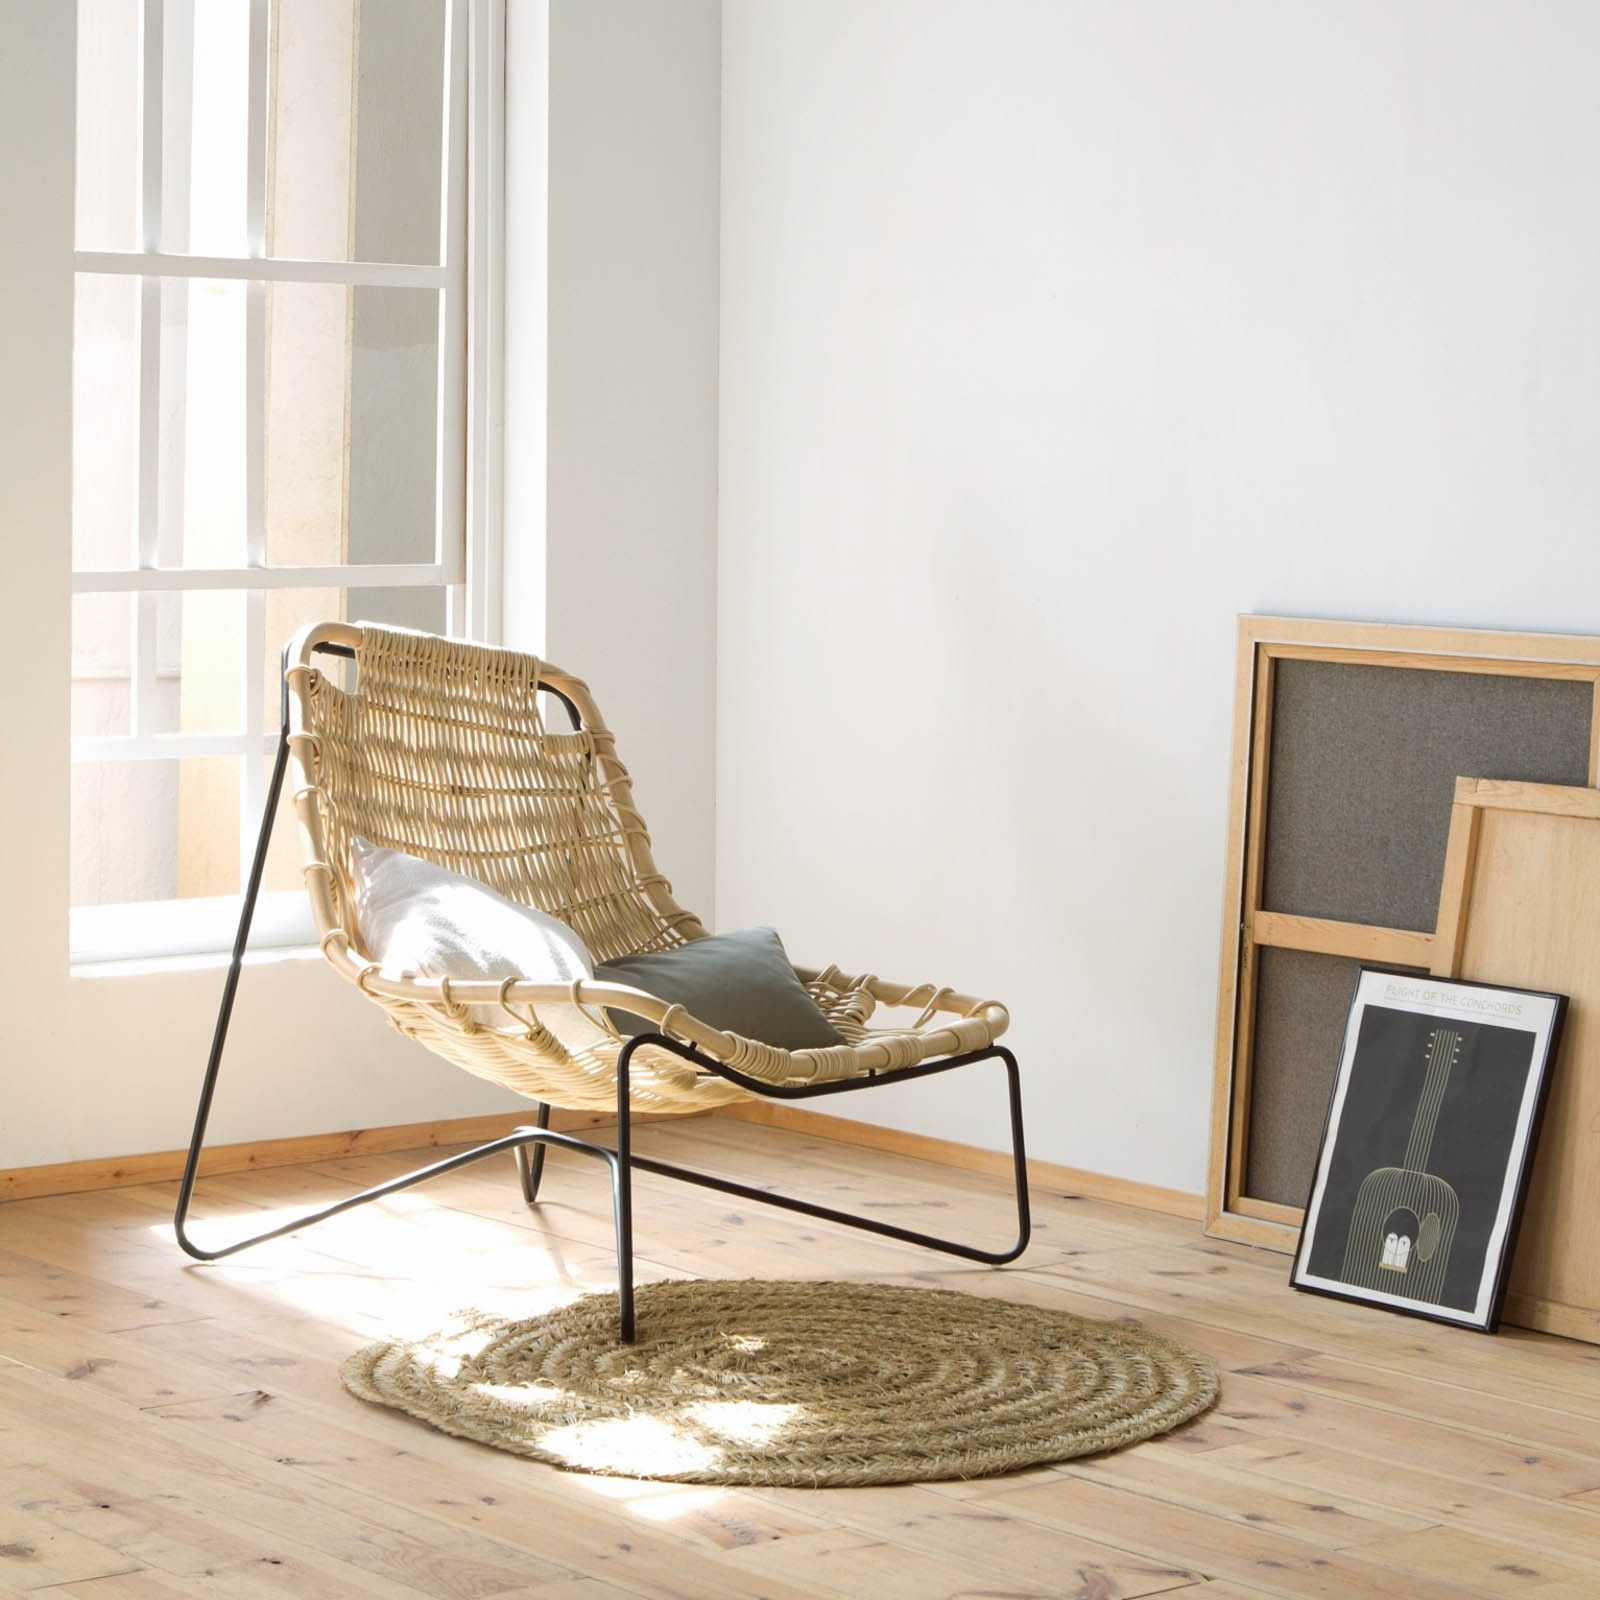 Tina lounge chair by Benedetta Tagliabue – EMBT for Expormim